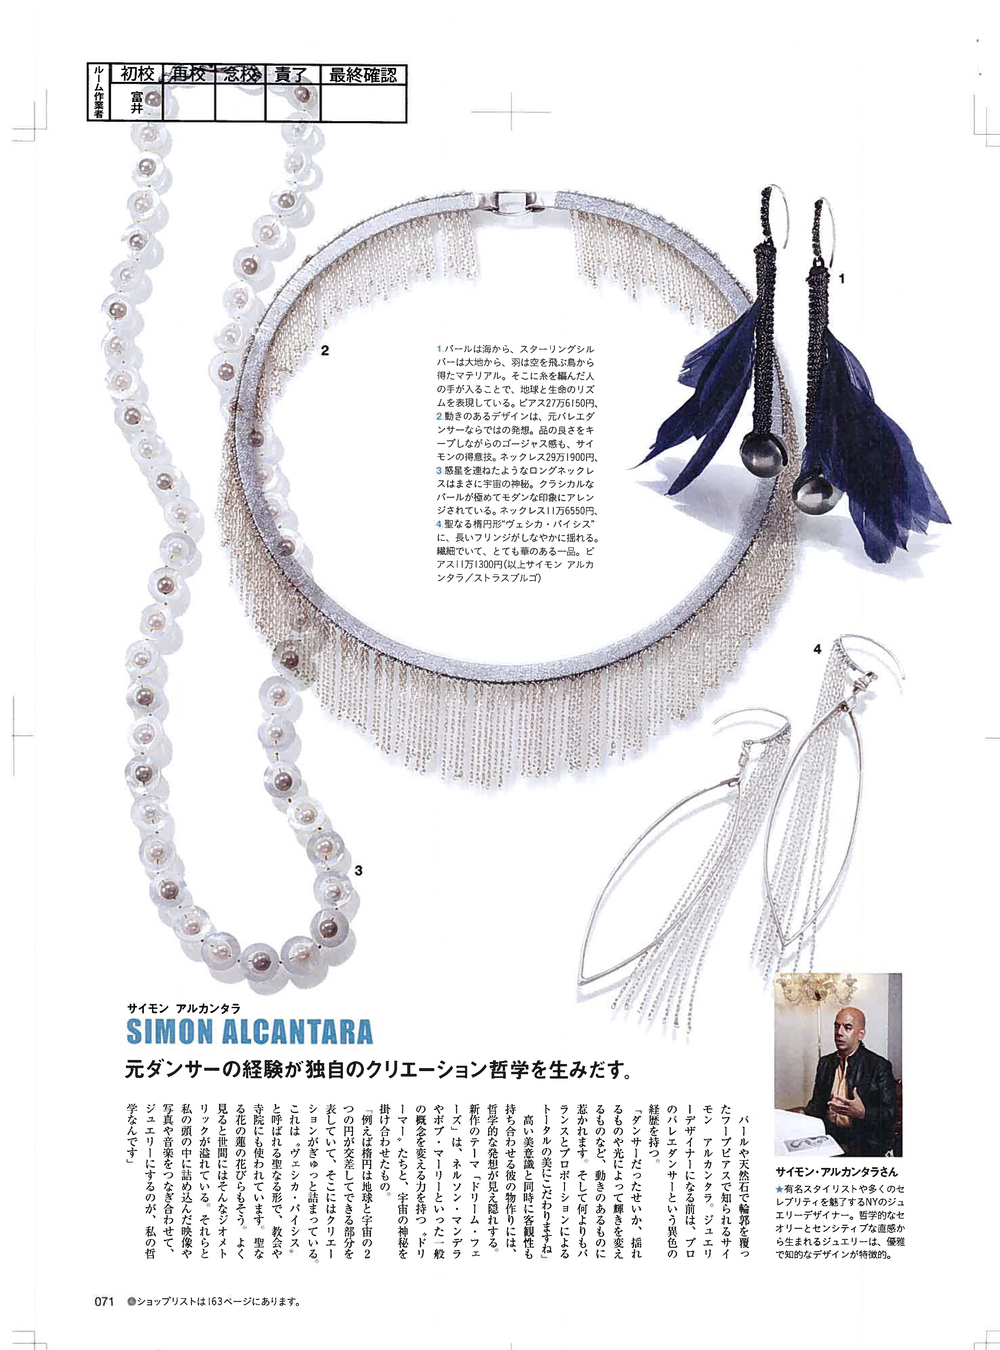 JAPAN CROISSANT PREMIUM MAGAZINE MARCH 2013 FEATURE ON SIMON ALCANTARA JEWELRY AT STRASBURGO, TOKYO, JAPAN